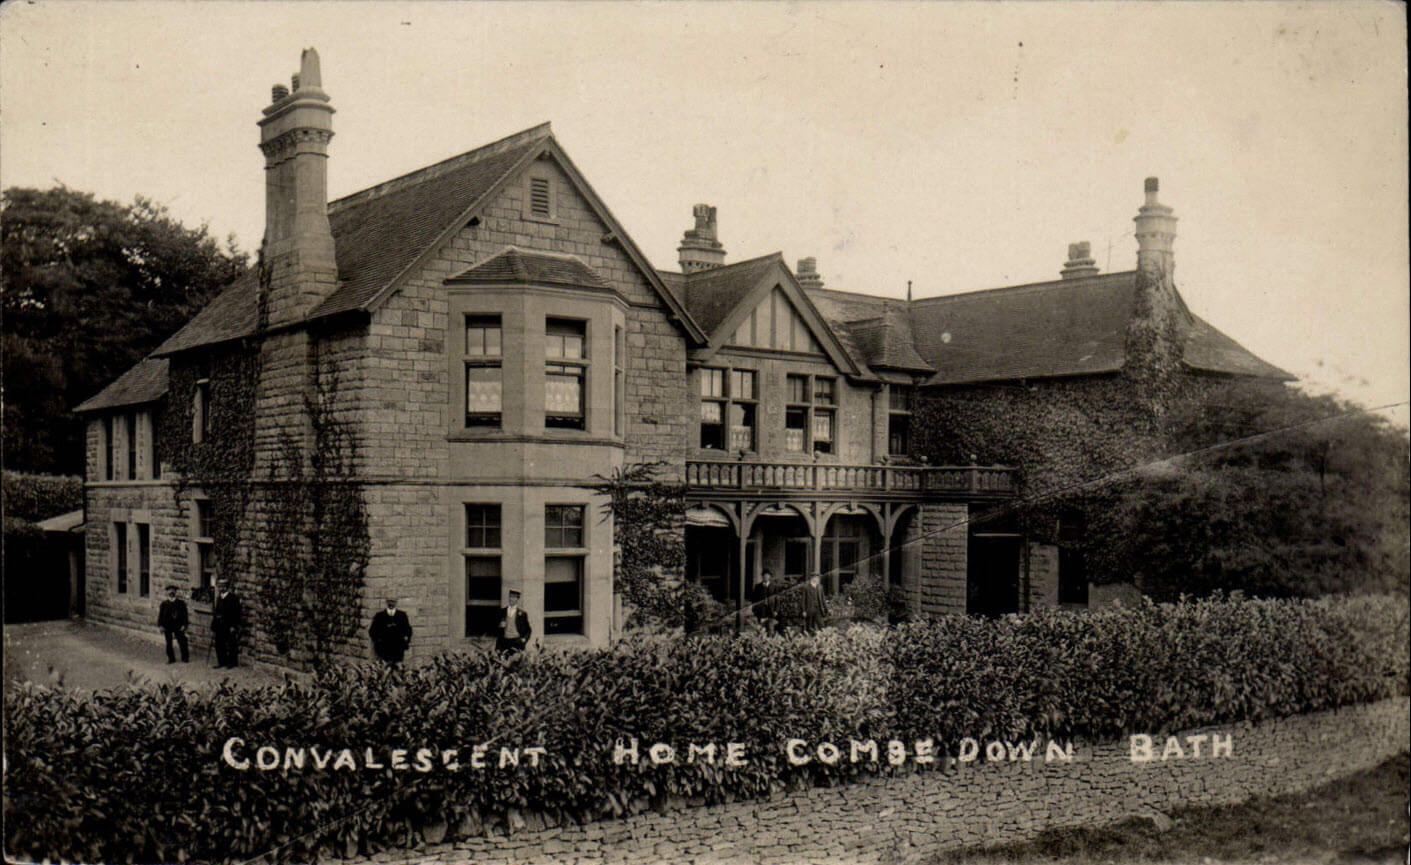 Combe Down convalescent home early 1900s